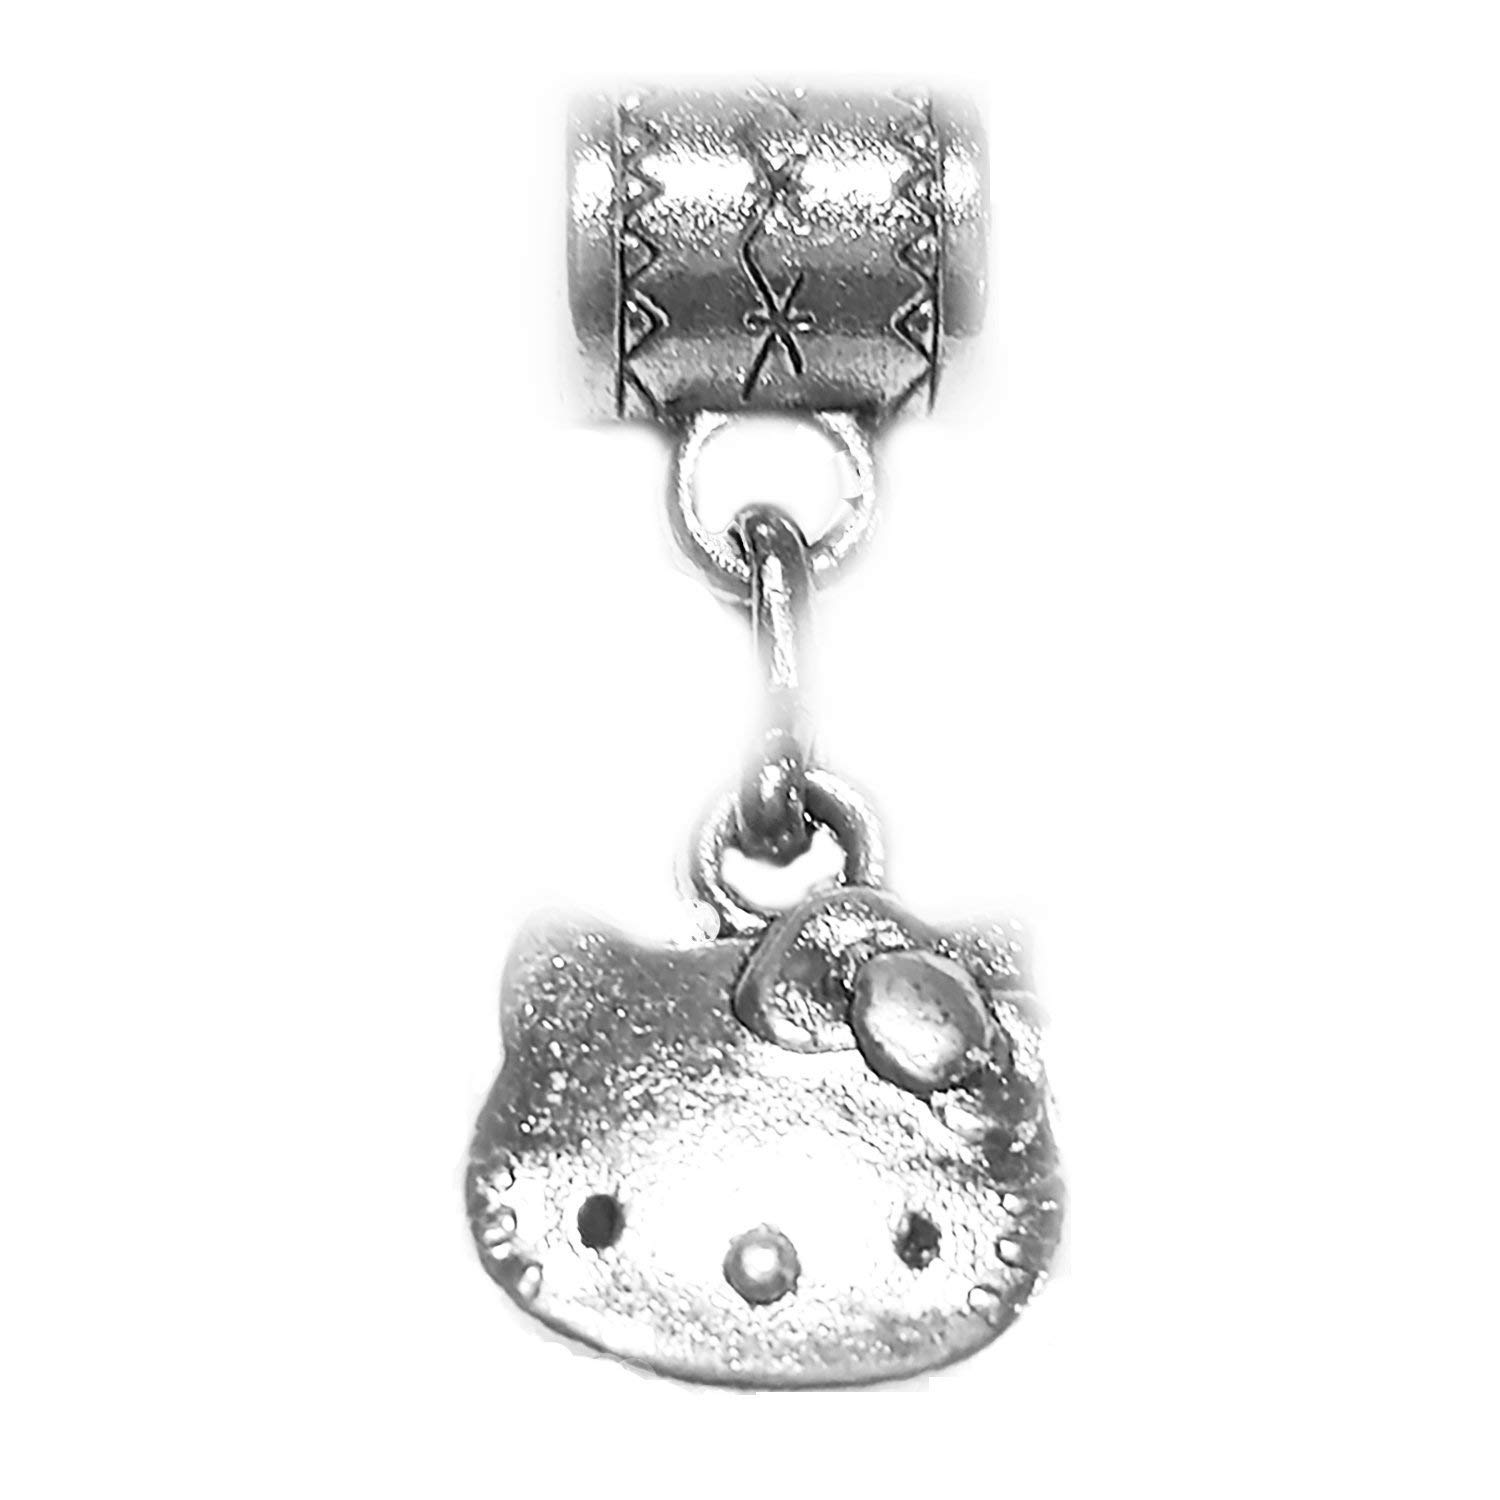 """""""Hello Kitty charm"""" Tibetan Silver Hanging charm by Mossy Cabin for large hole style snake chain charm bracelets, or add to a neck chain, pendant necklace or key chain"""